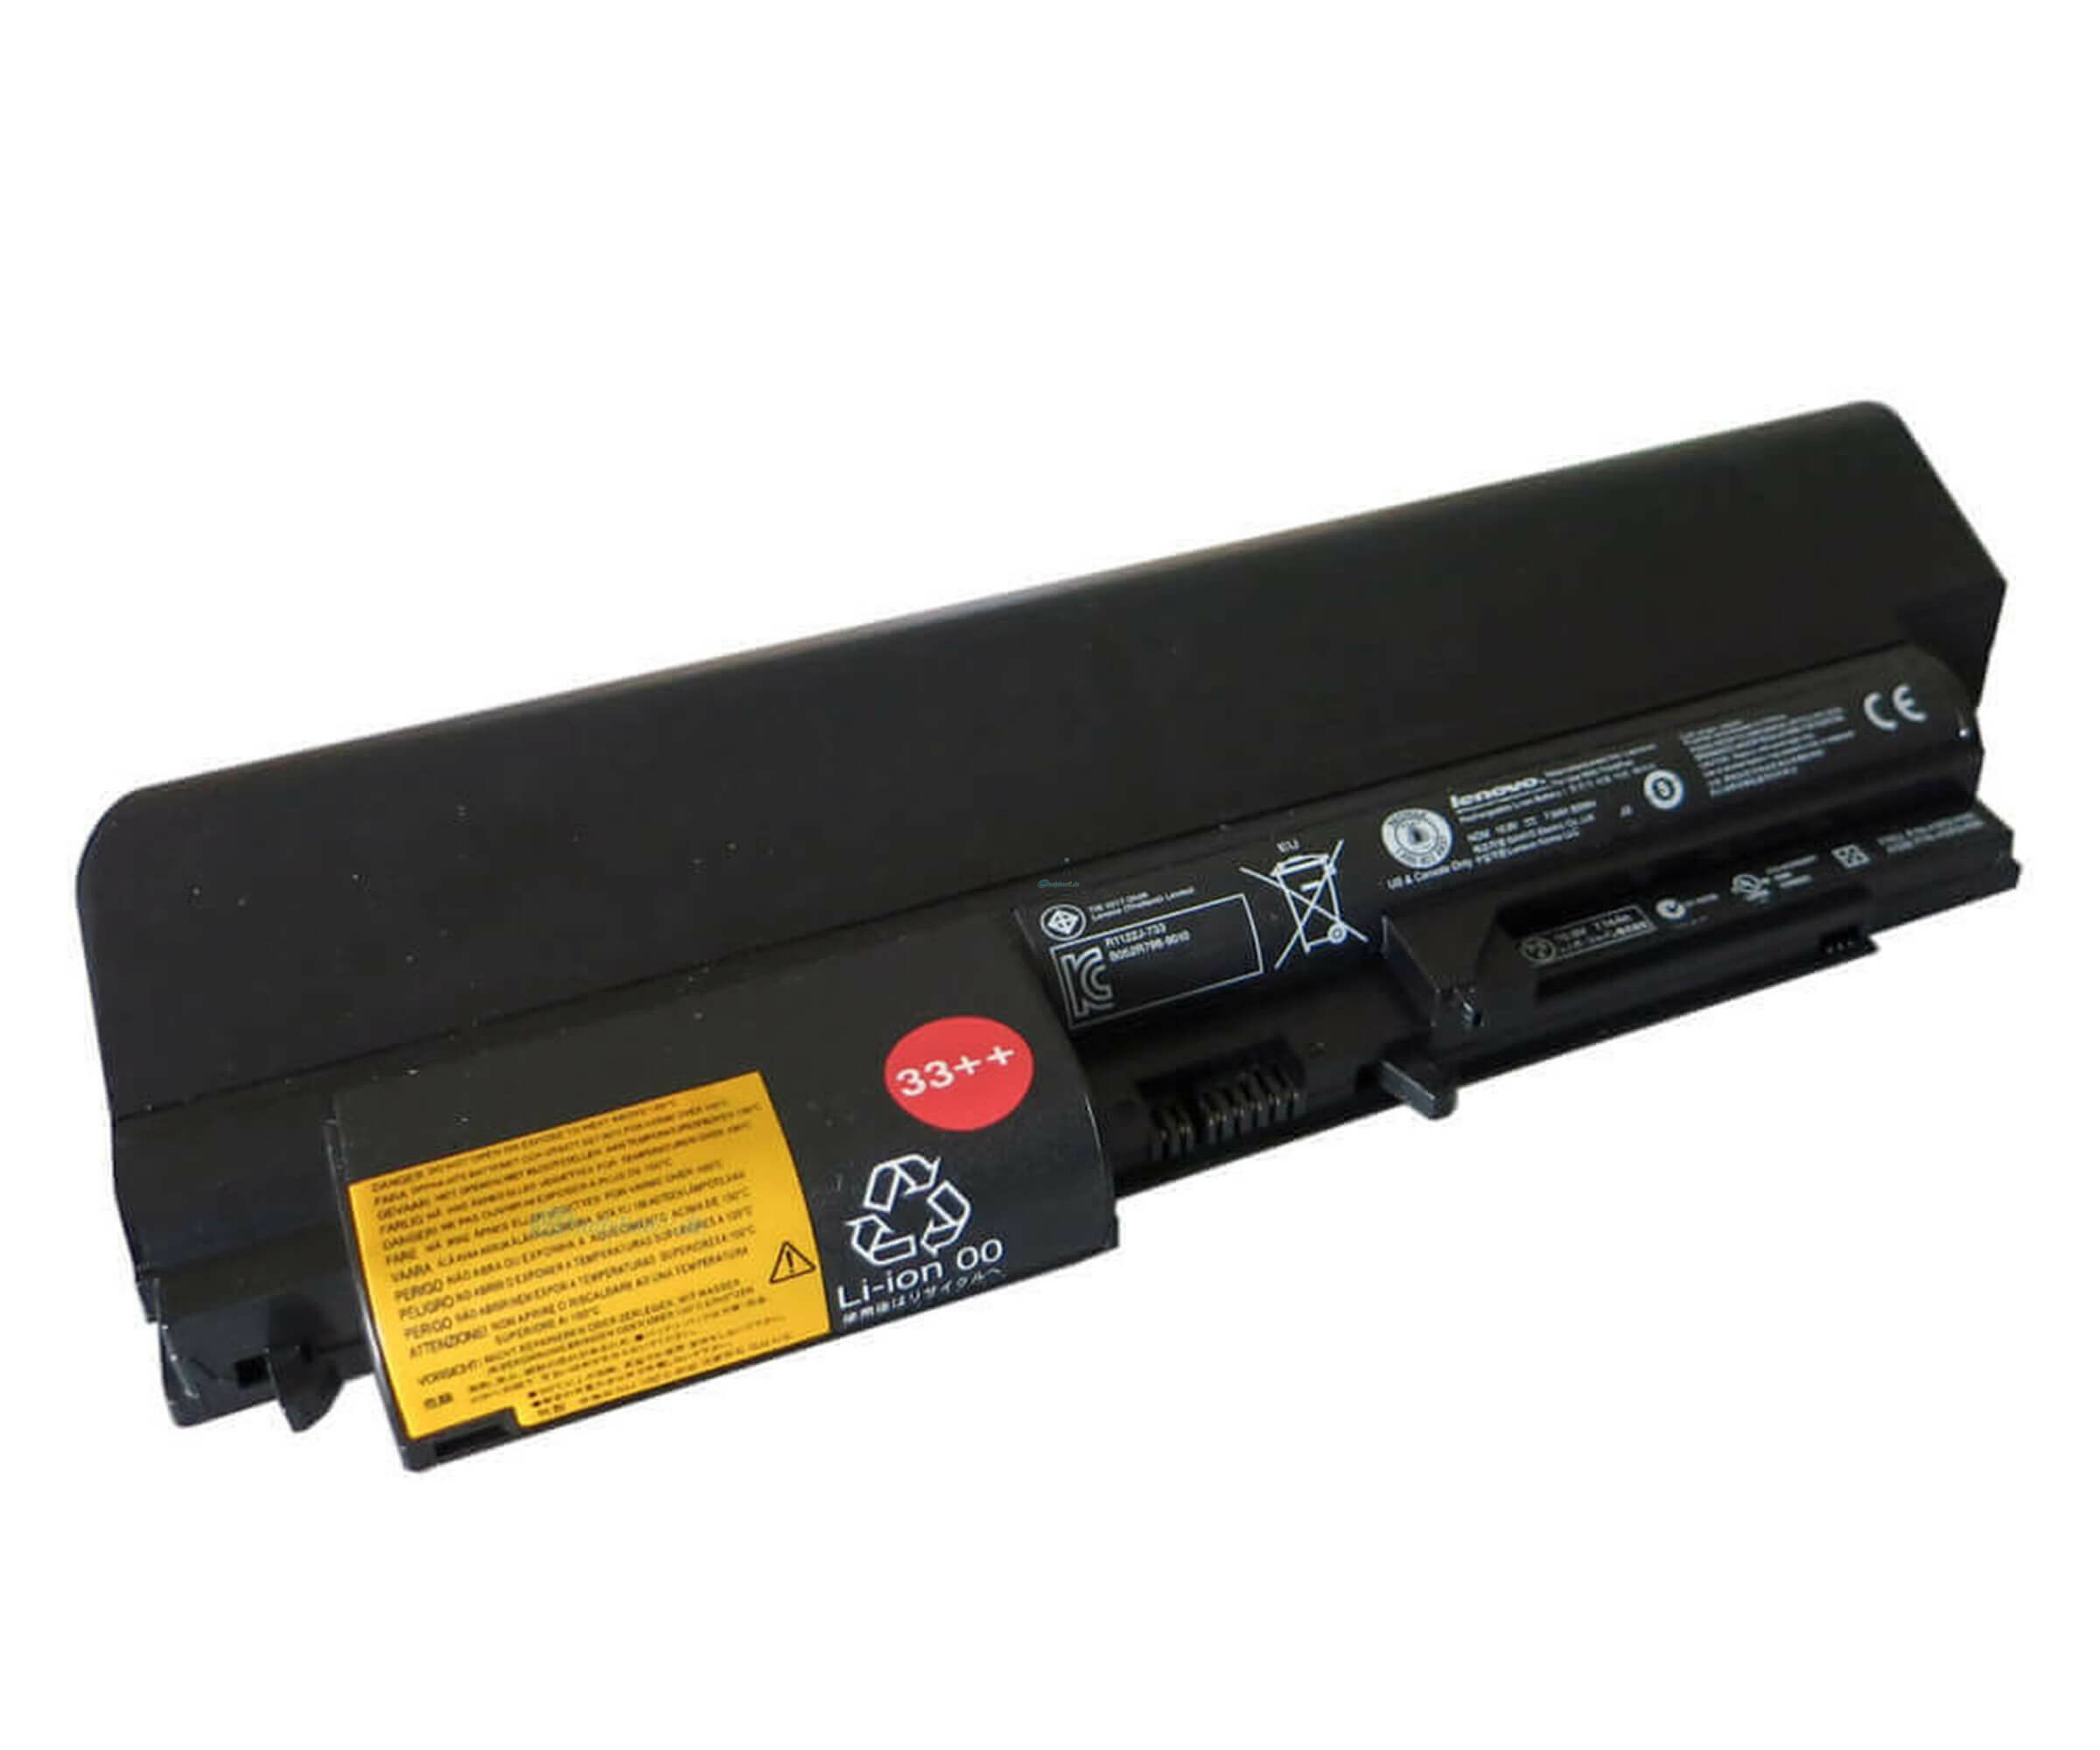 Lenovo ThinkPad - Laptop-Batterie (High Capacity) - 1 x Lithium-Ionen 9 Zellen 7800 mAh